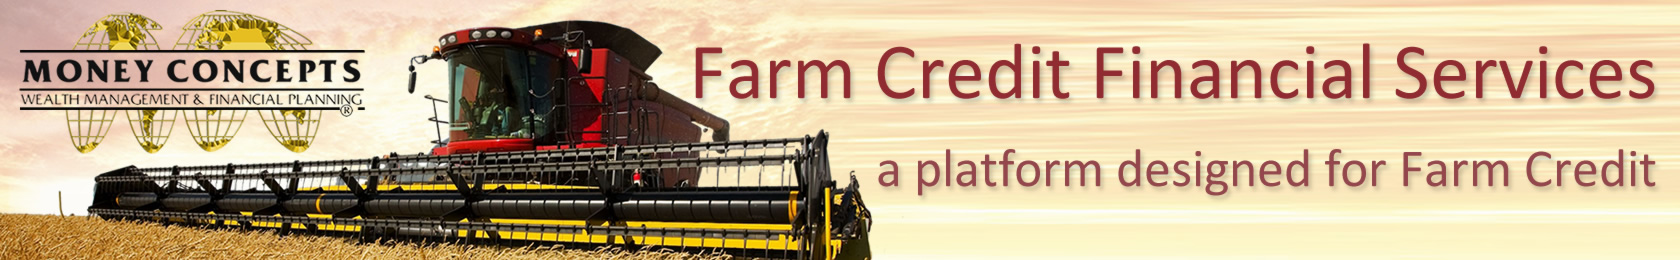 Financial Service Programs for Farm Credit